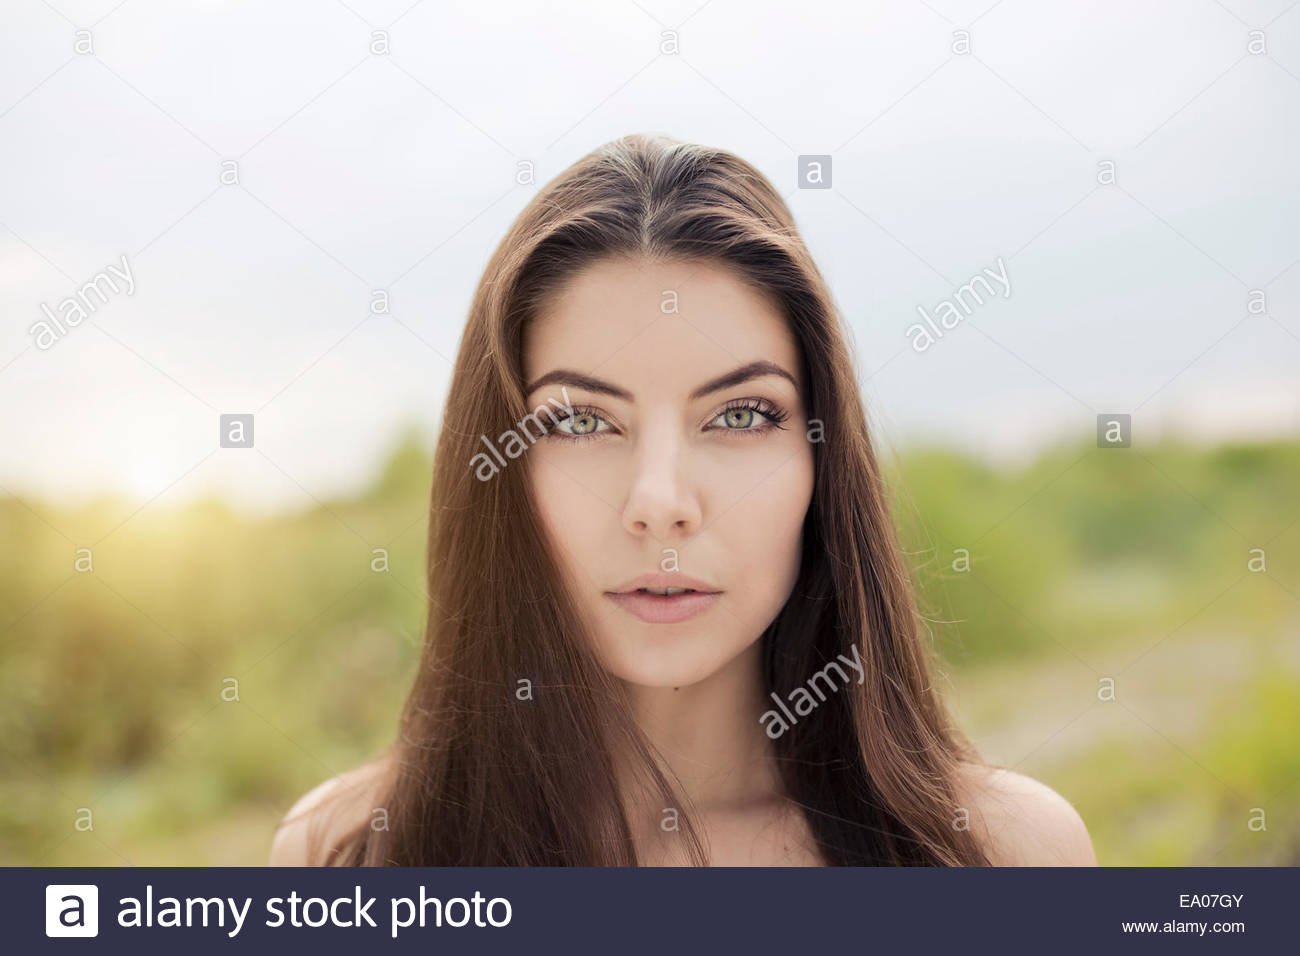 Bare shoulder portrait of beautiful young woman - Stock Image